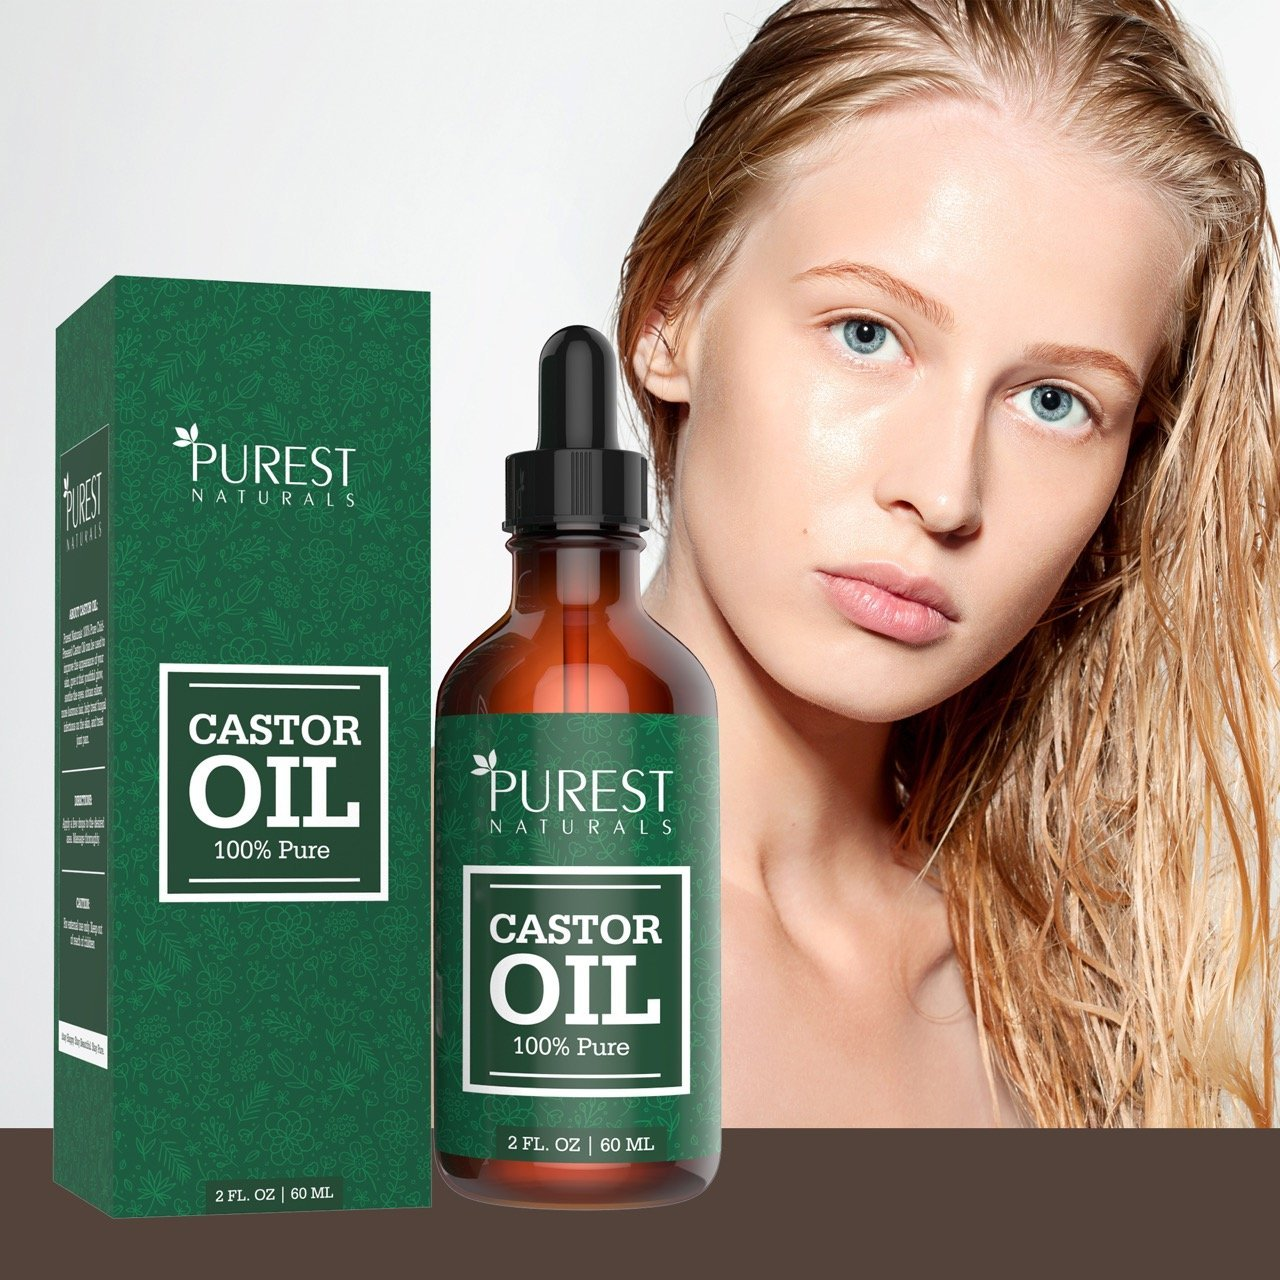 Purest Naturals Organic Castor Oil - Double Size - Best Natural Regrowth Treatment For Eyebrows, Eyelashes, Hair & Skin Moisturizer - 100% Cold-Pressed, Pure & Hexane Free